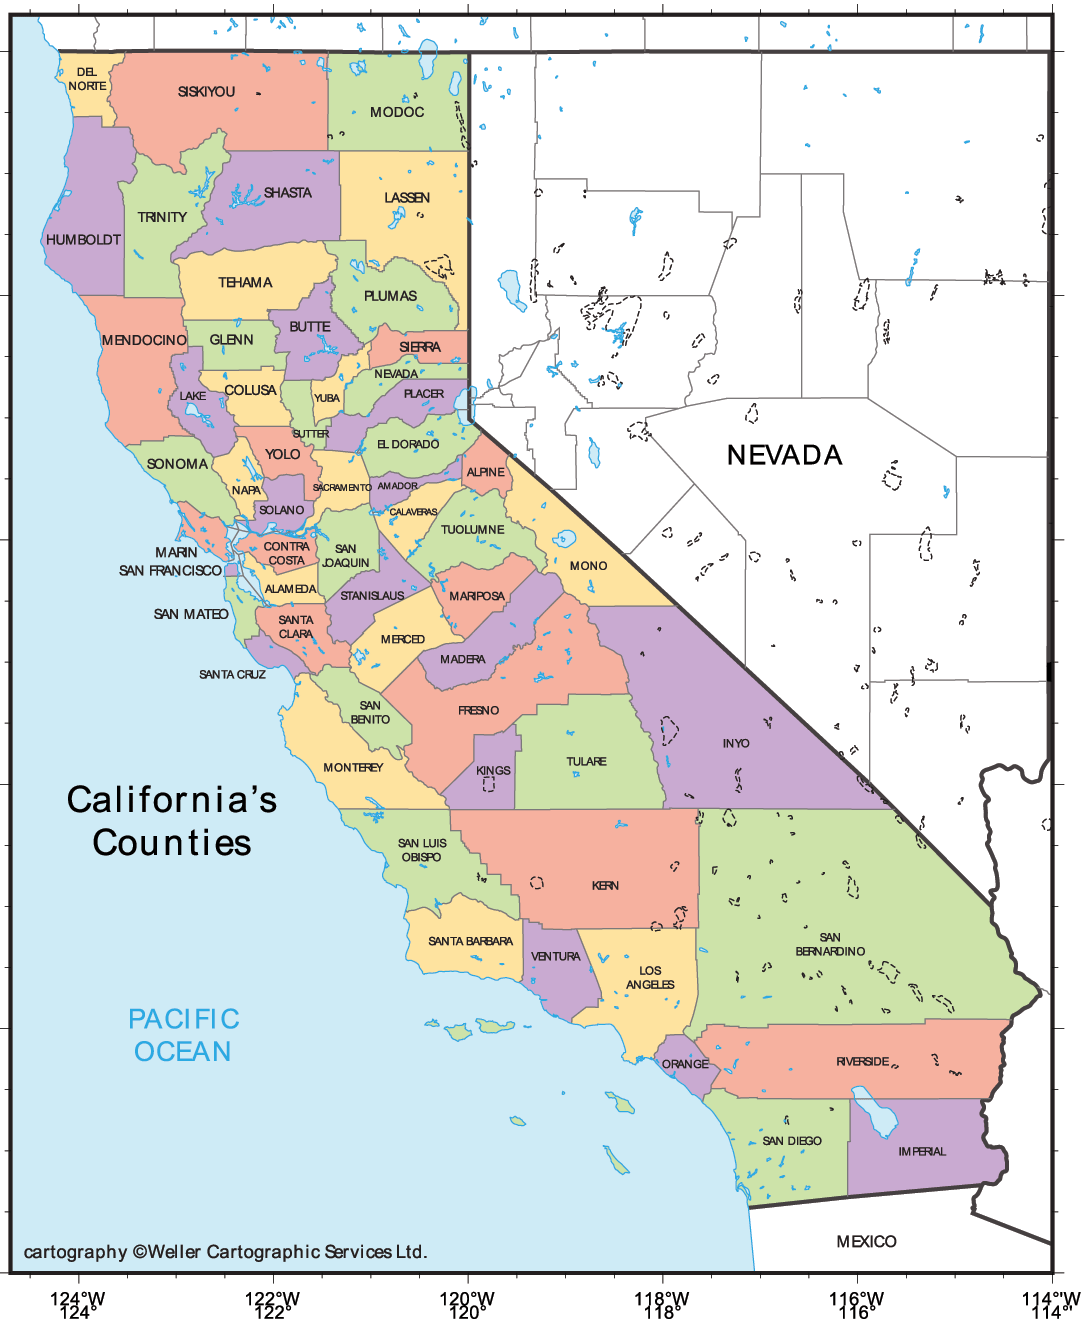 California Cities Map Mapsofnet - Calfornia map